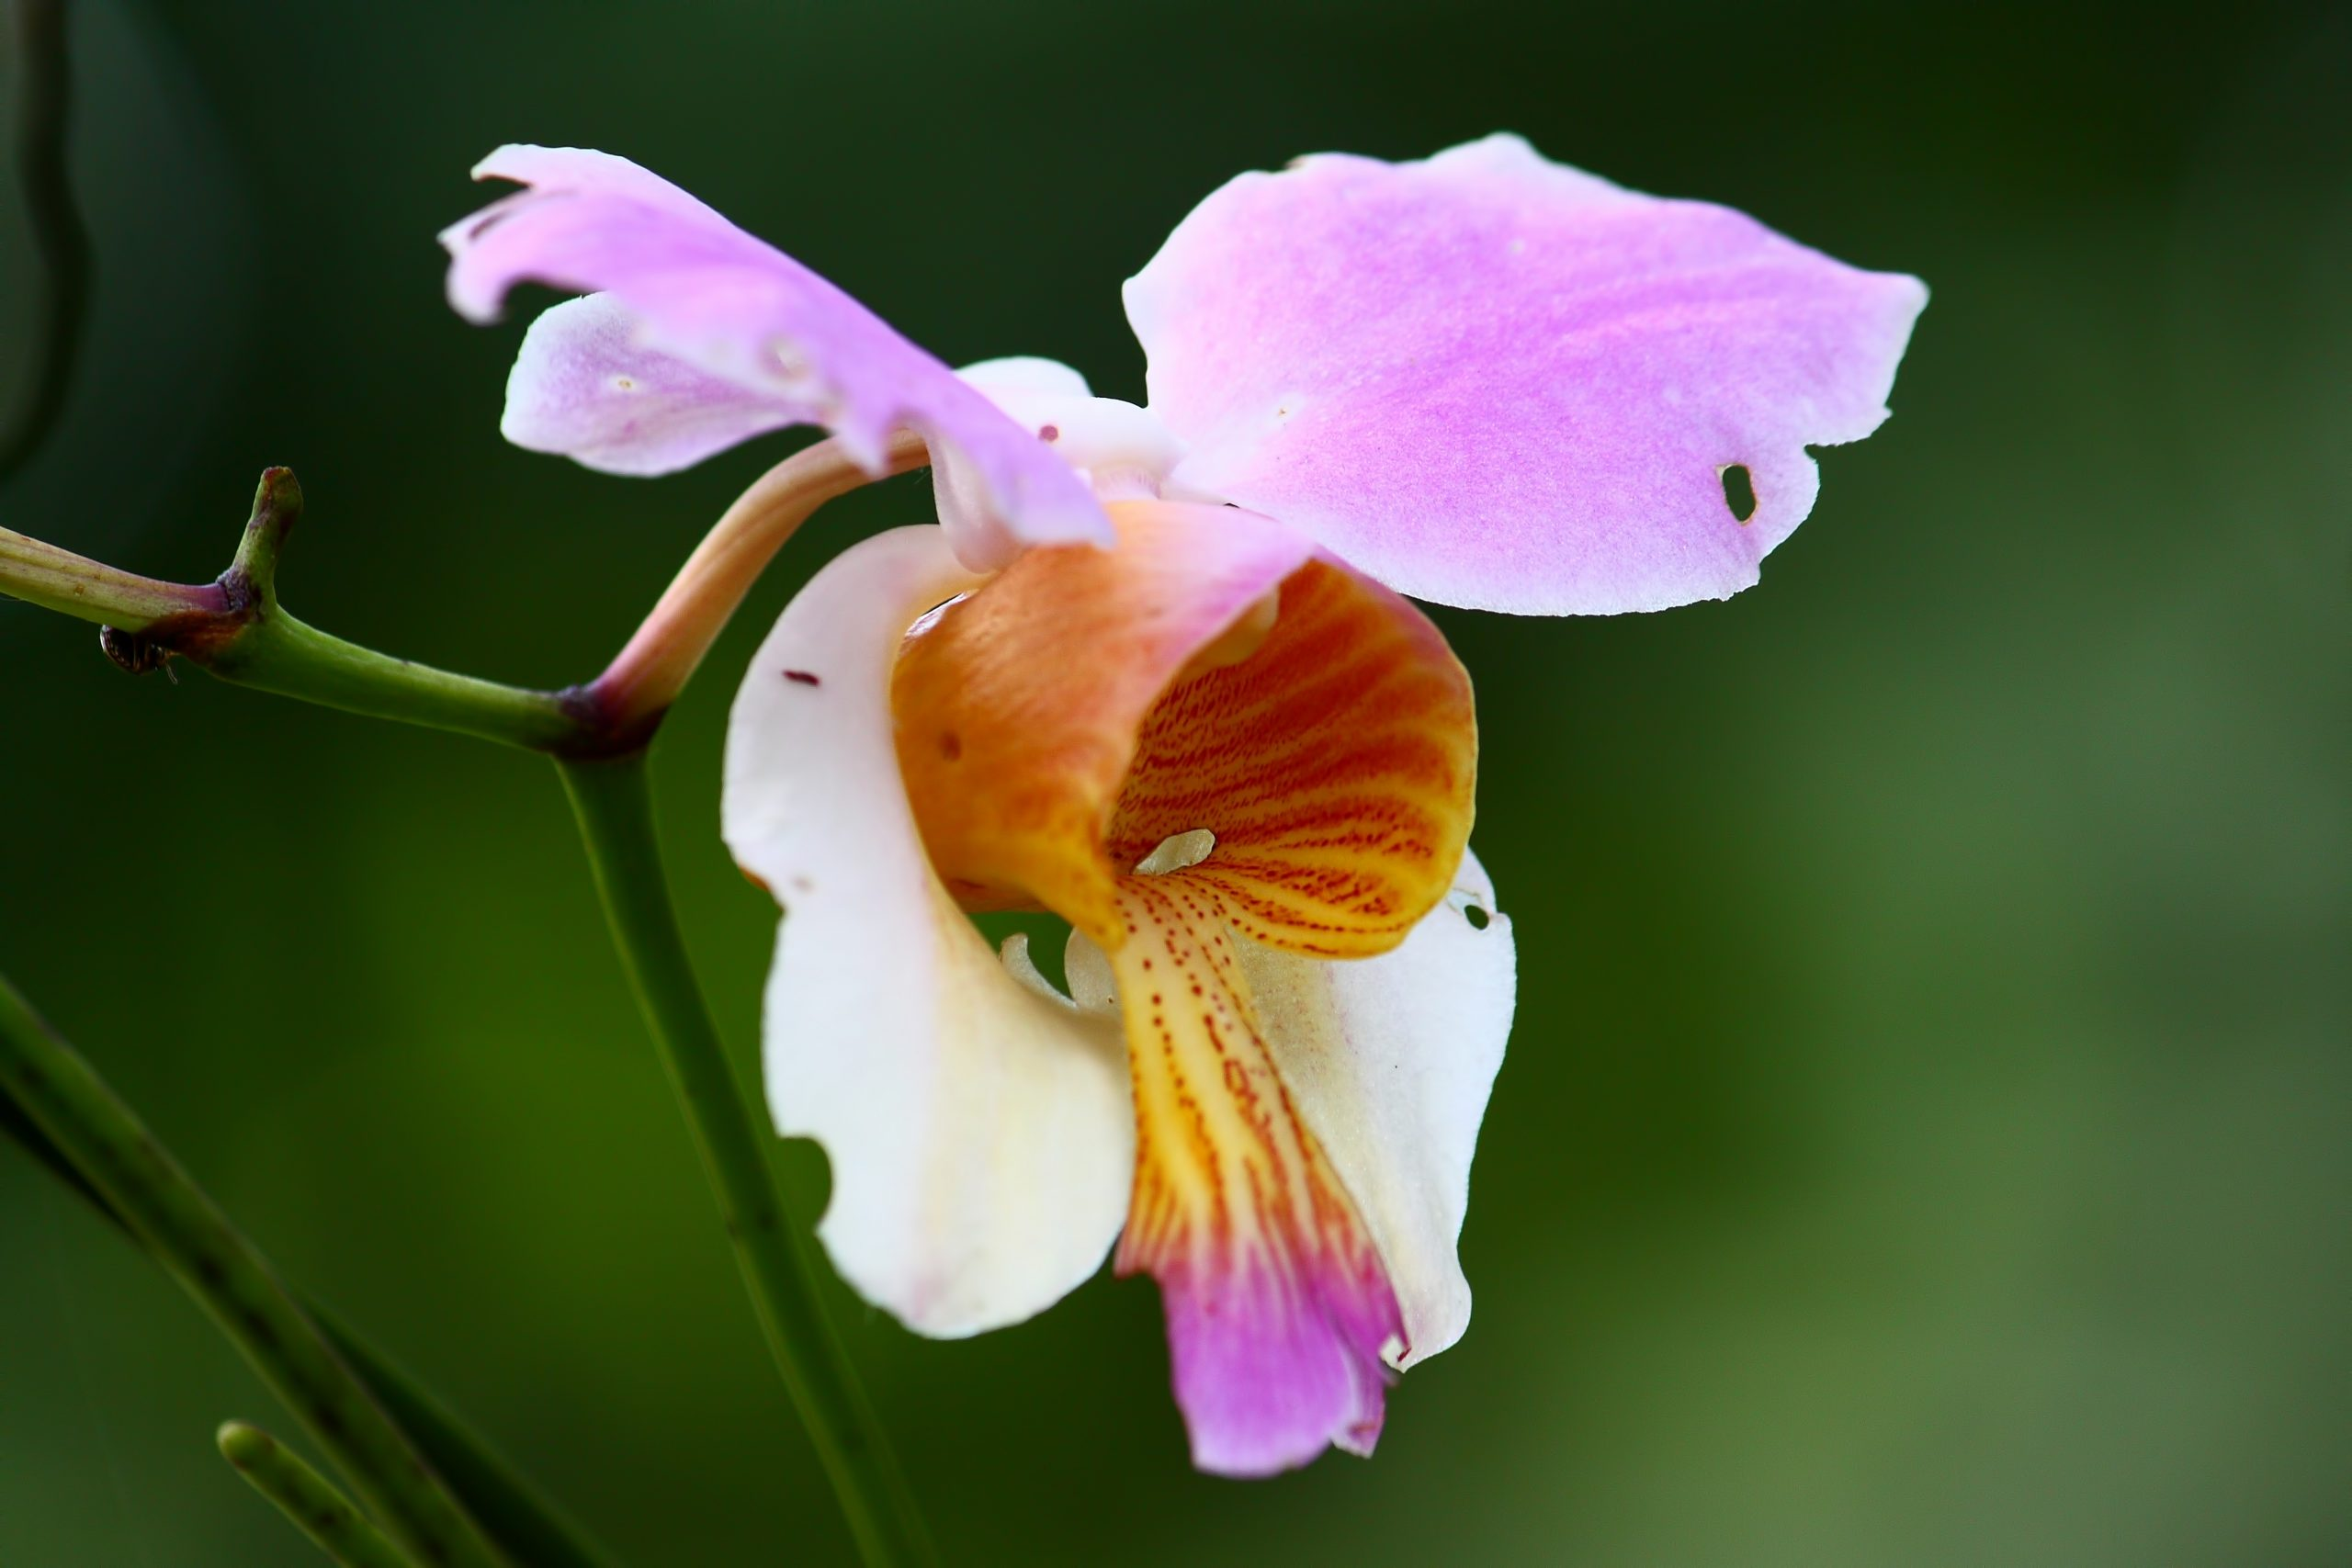 Close-up of beutiful Orchid flower